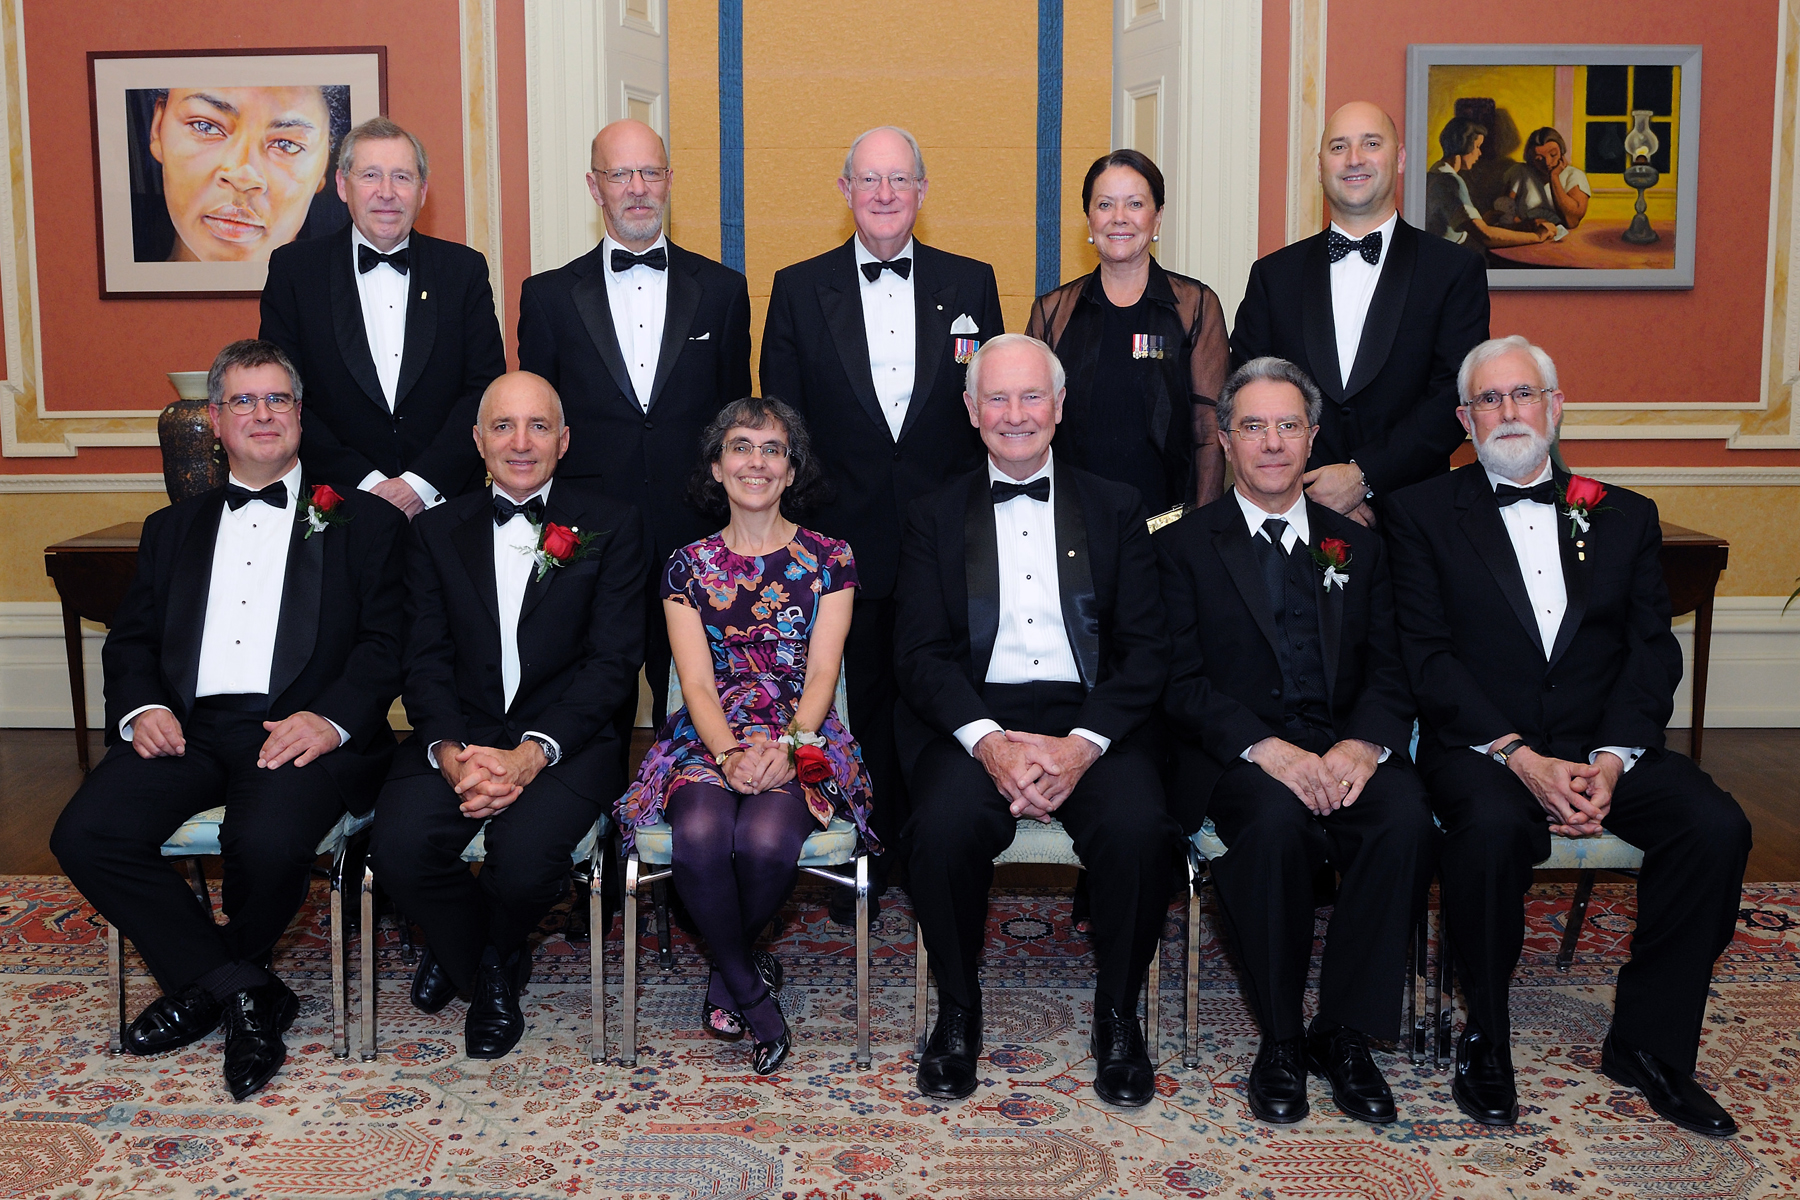 His Excellency the Right Honourable David Johnston, Governor General of Canada, presented the 2011 Killam Prizes to five eminent Canadians during a ceremony at Rideau Hall.